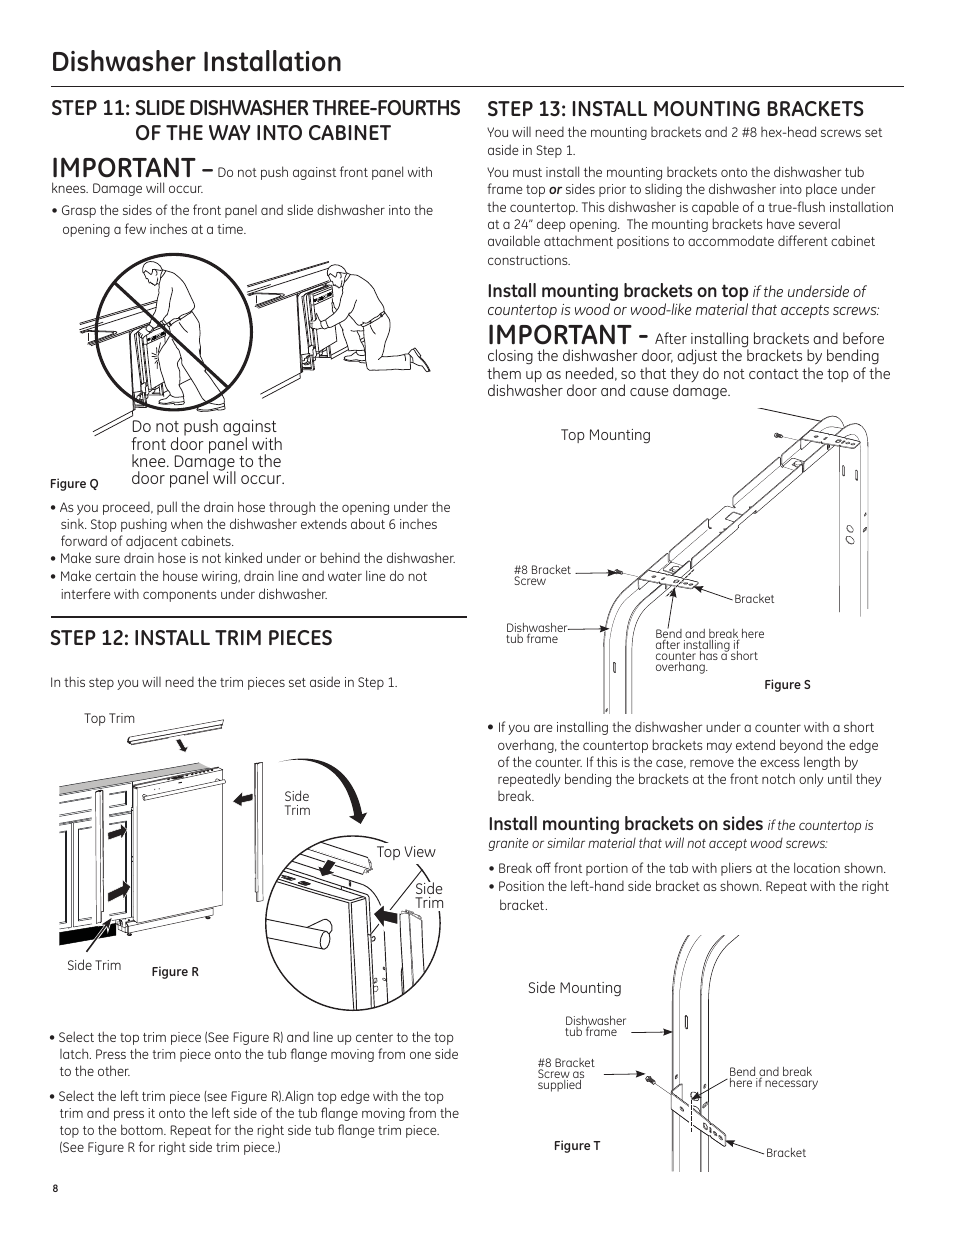 Dishwasher Installation Important Step 12 Install Trim Pieces Rca Wiring Diagram Ge Pdt750ssfss User Manual Page 8 48